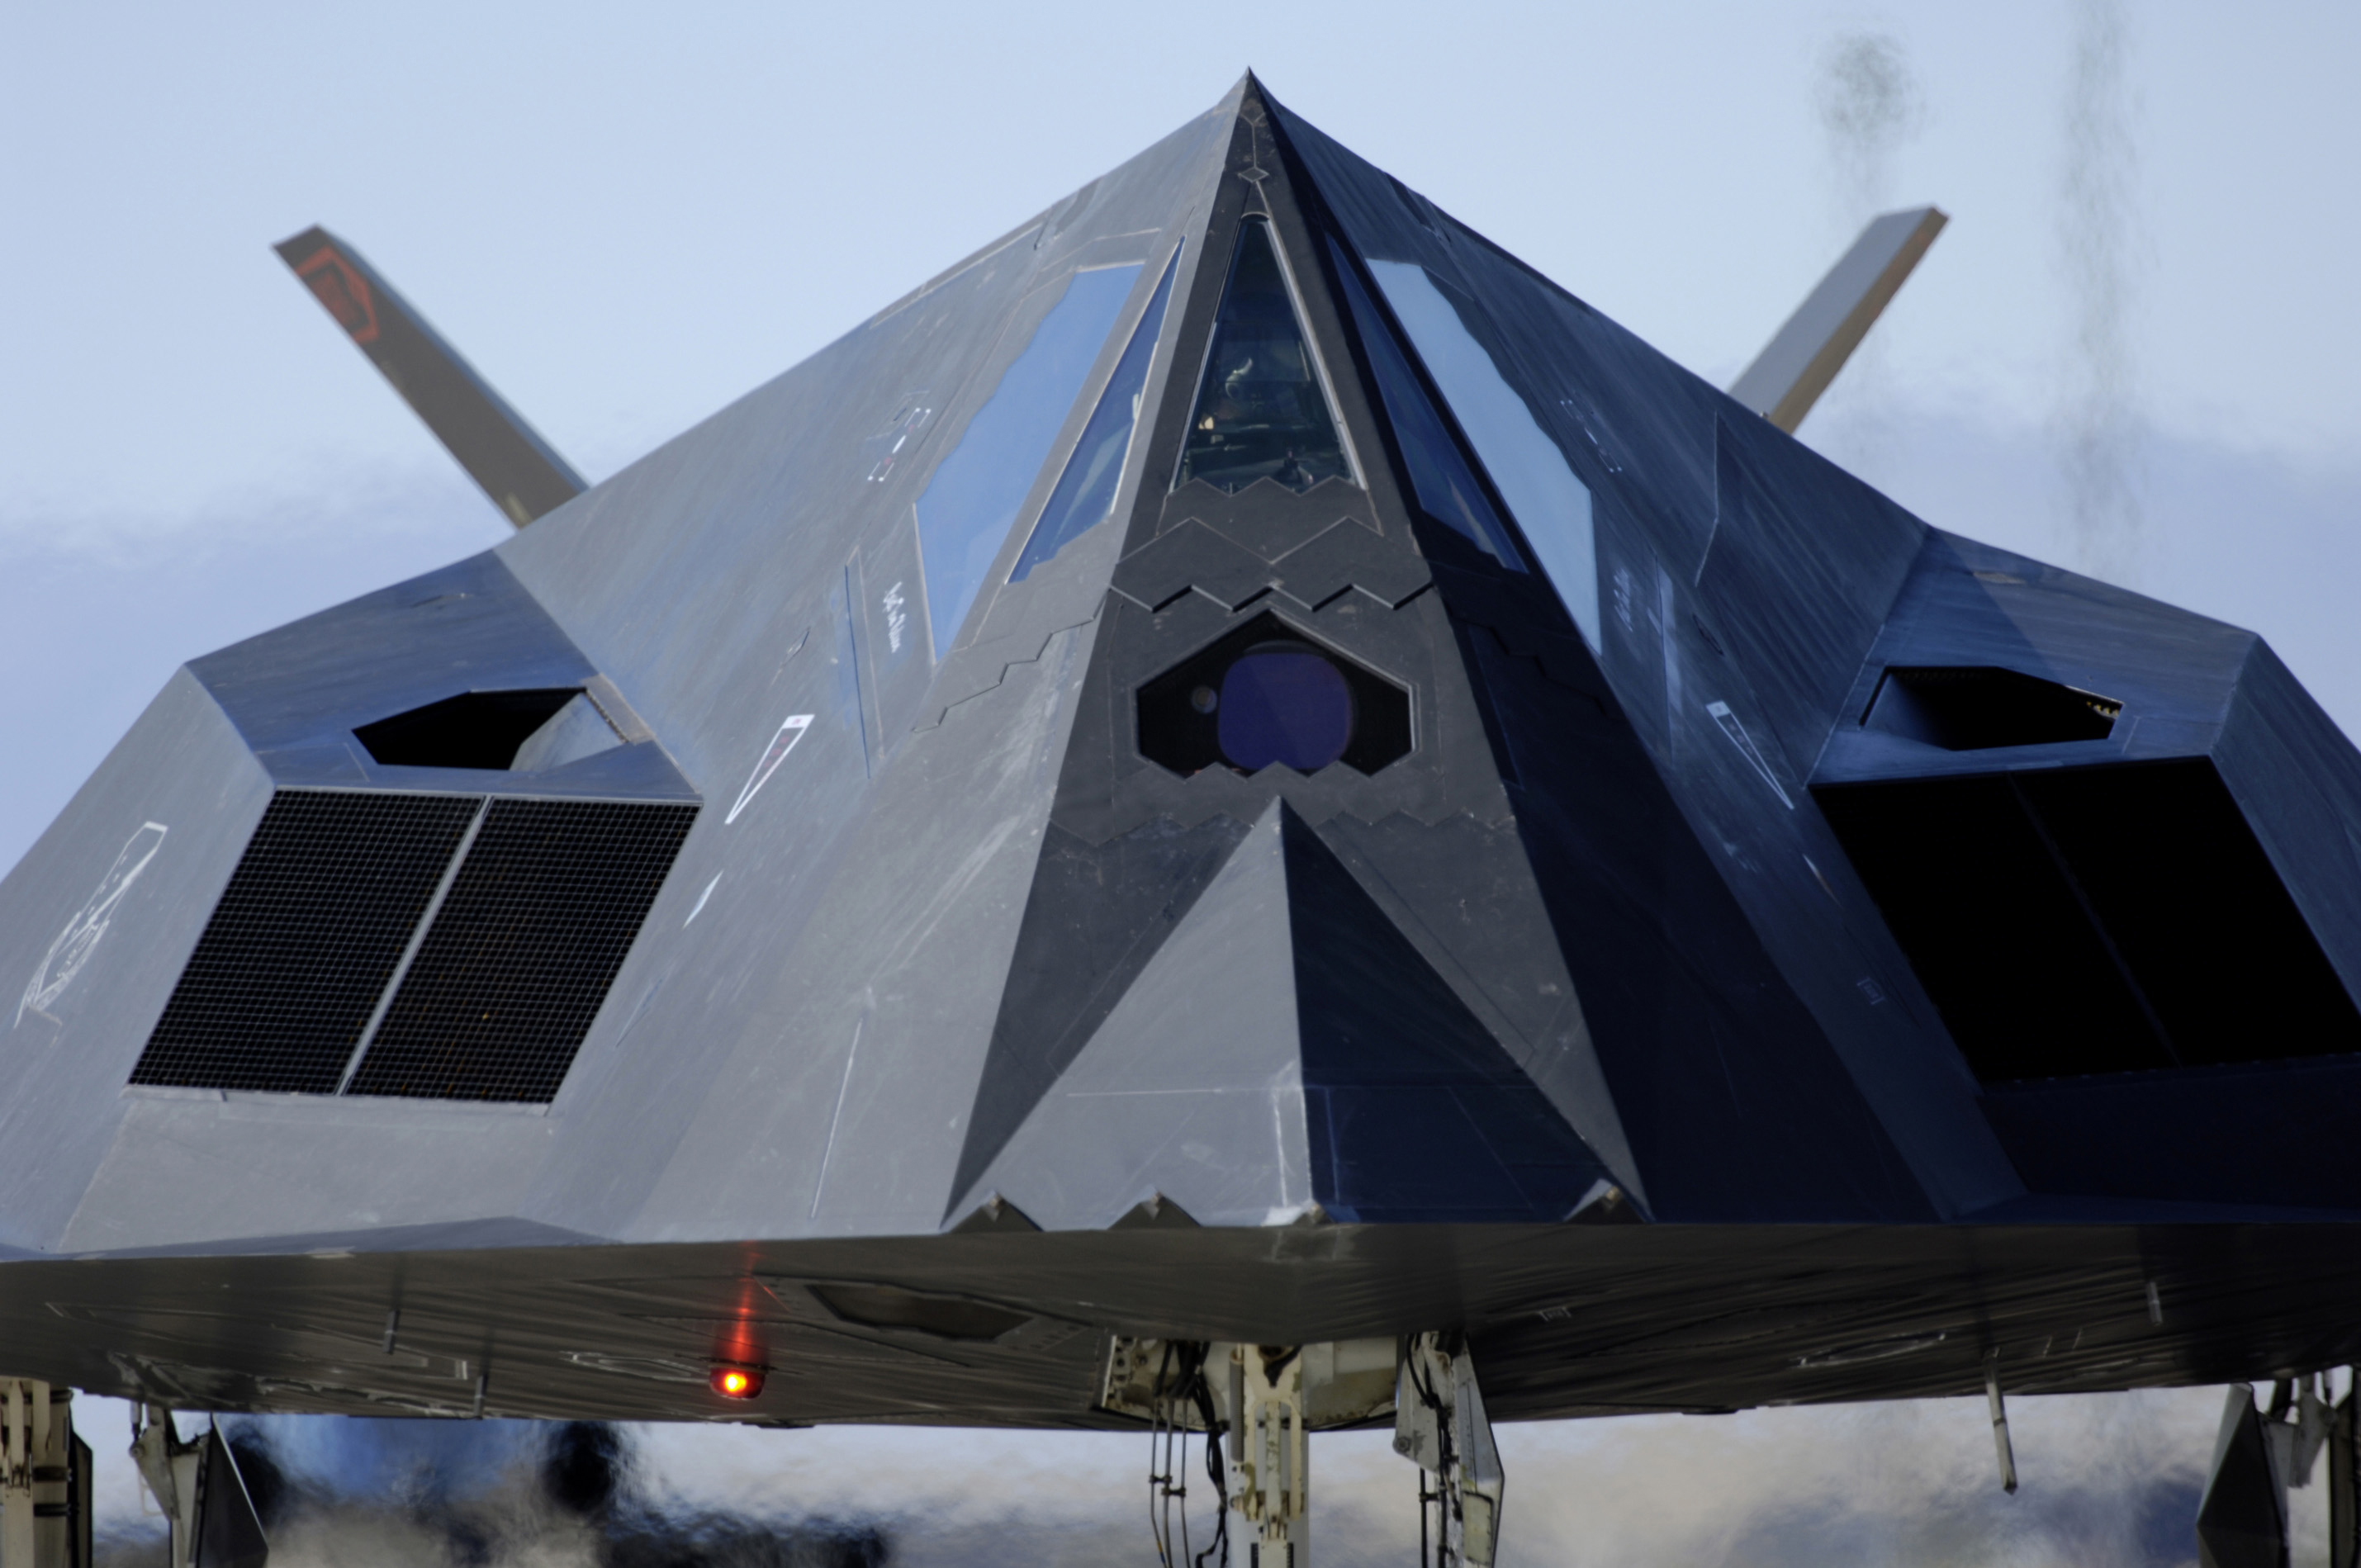 File:F-117 Front View.jpg - Wikipedia